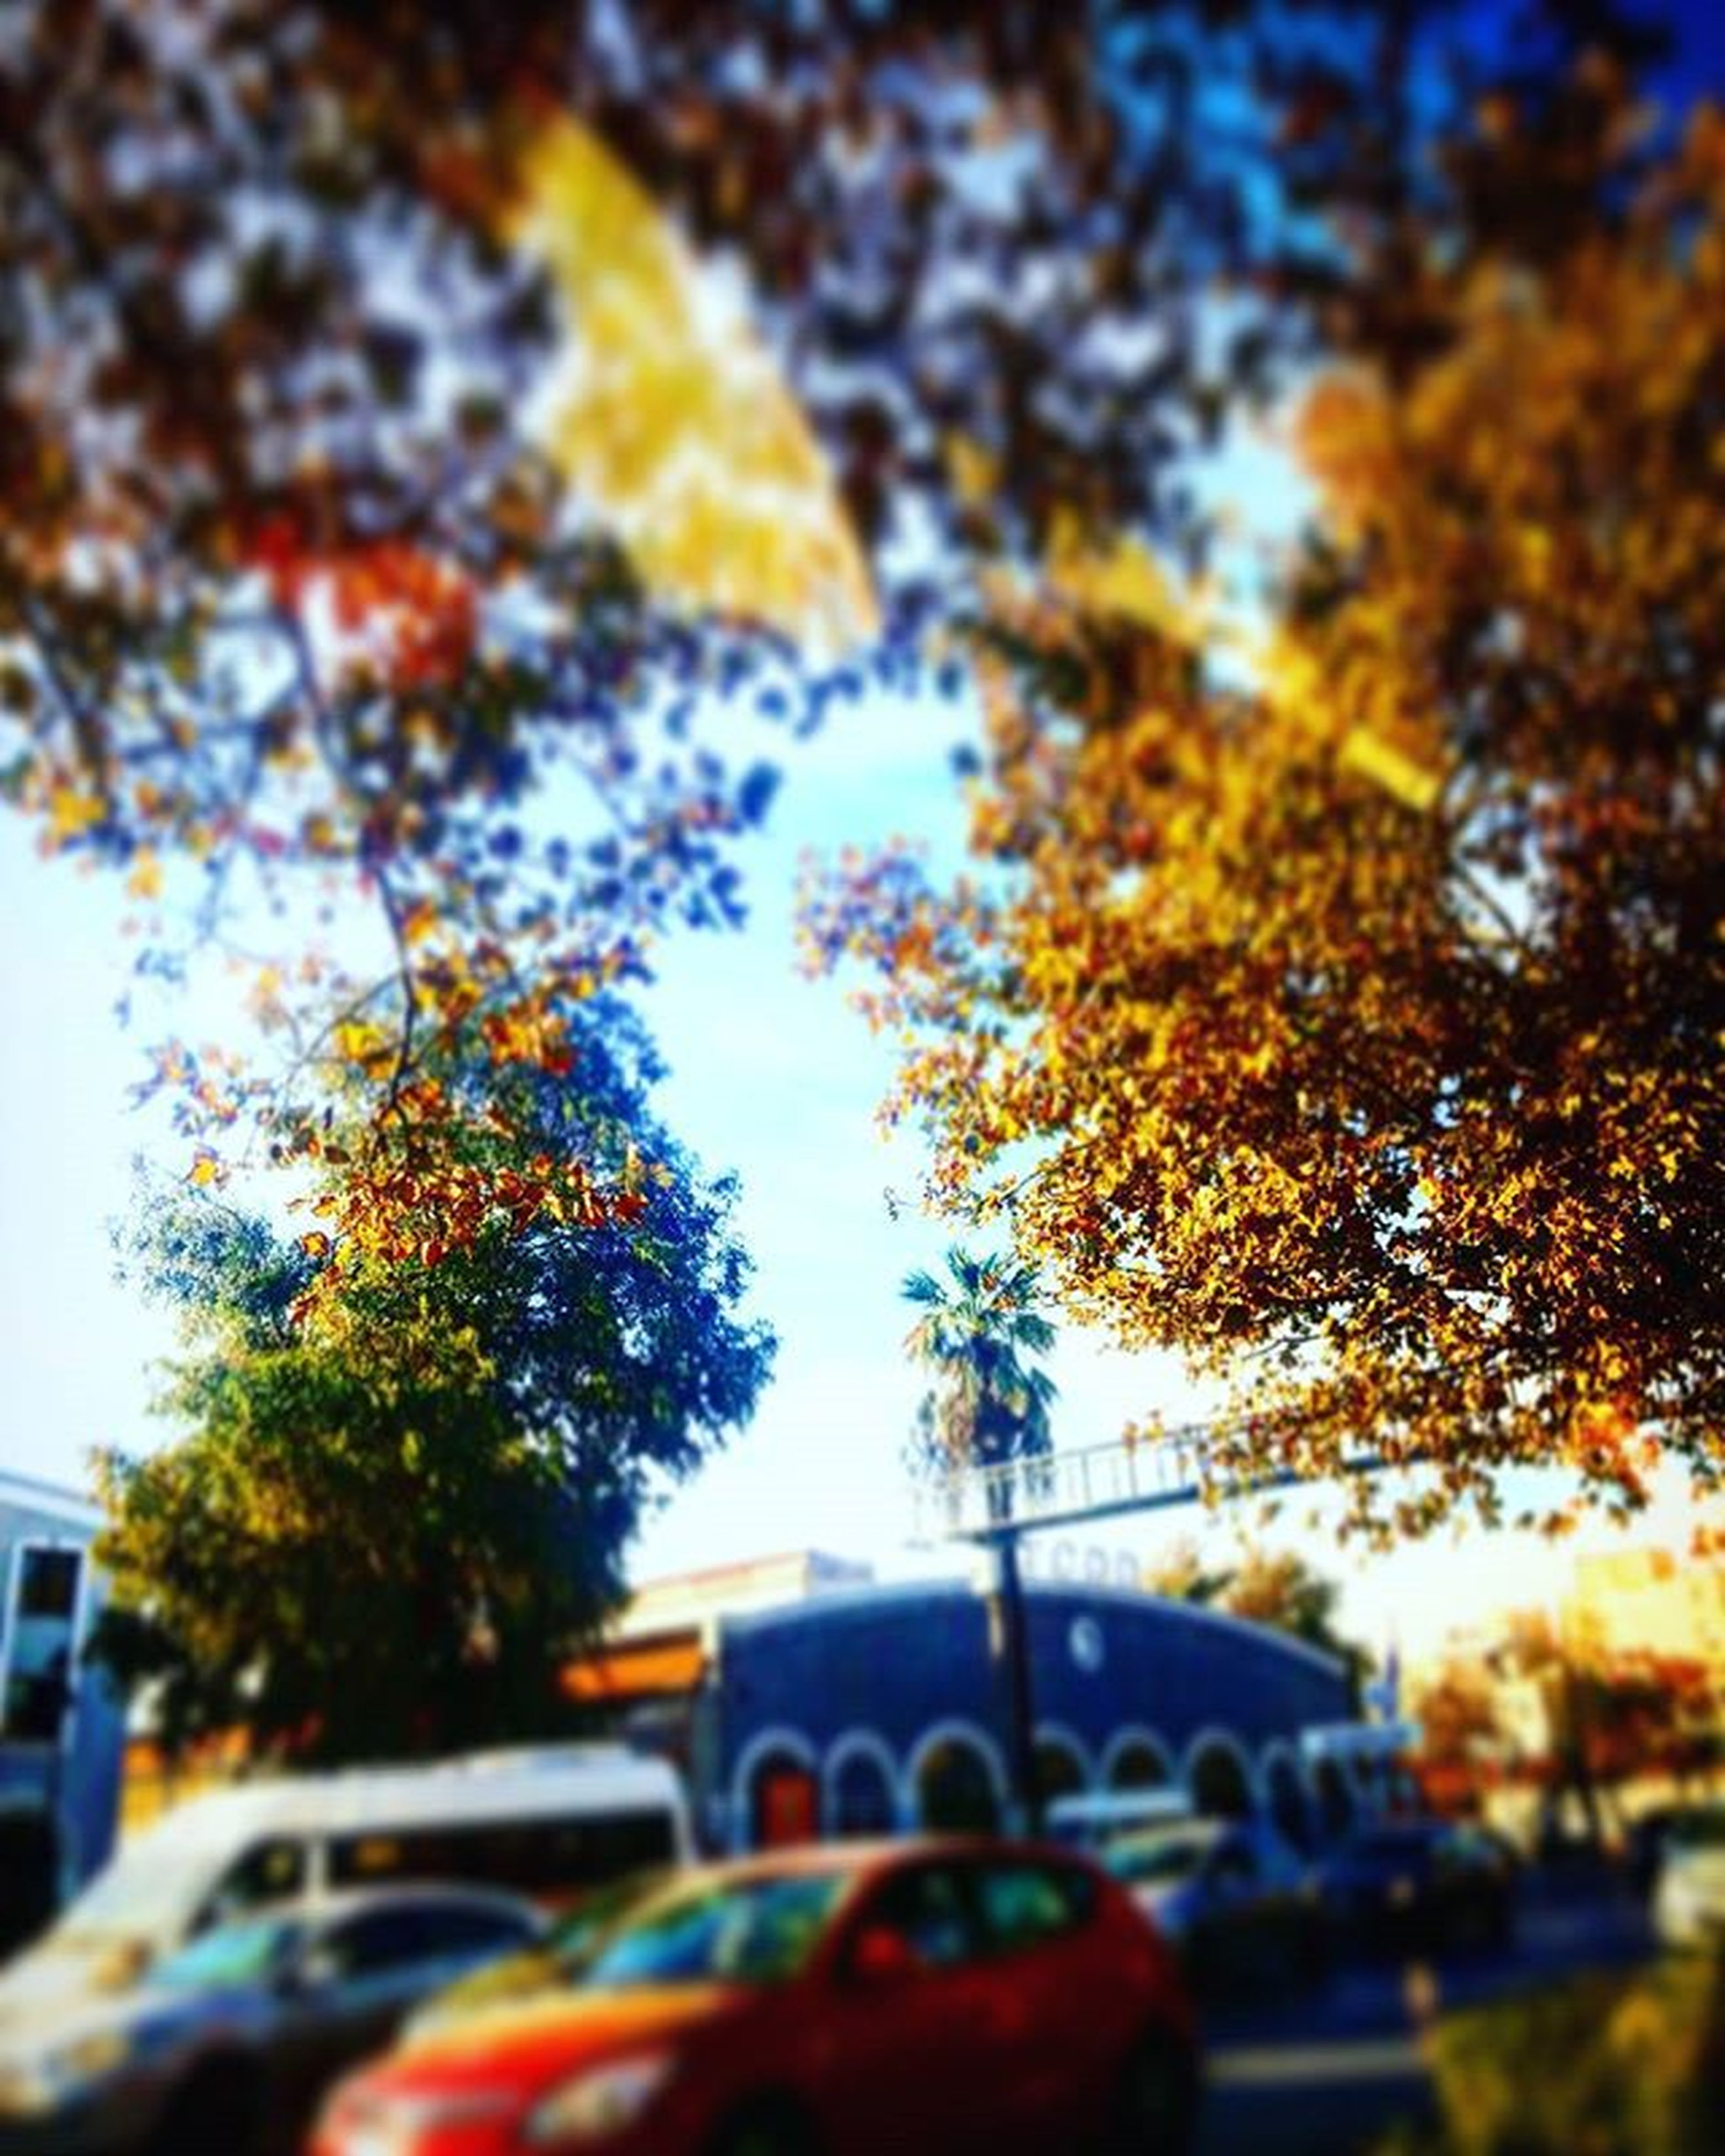 tree, autumn, change, selective focus, season, focus on foreground, leaf, branch, transportation, car, street, day, focus on background, nature, growth, outdoors, no people, leaves, built structure, close-up